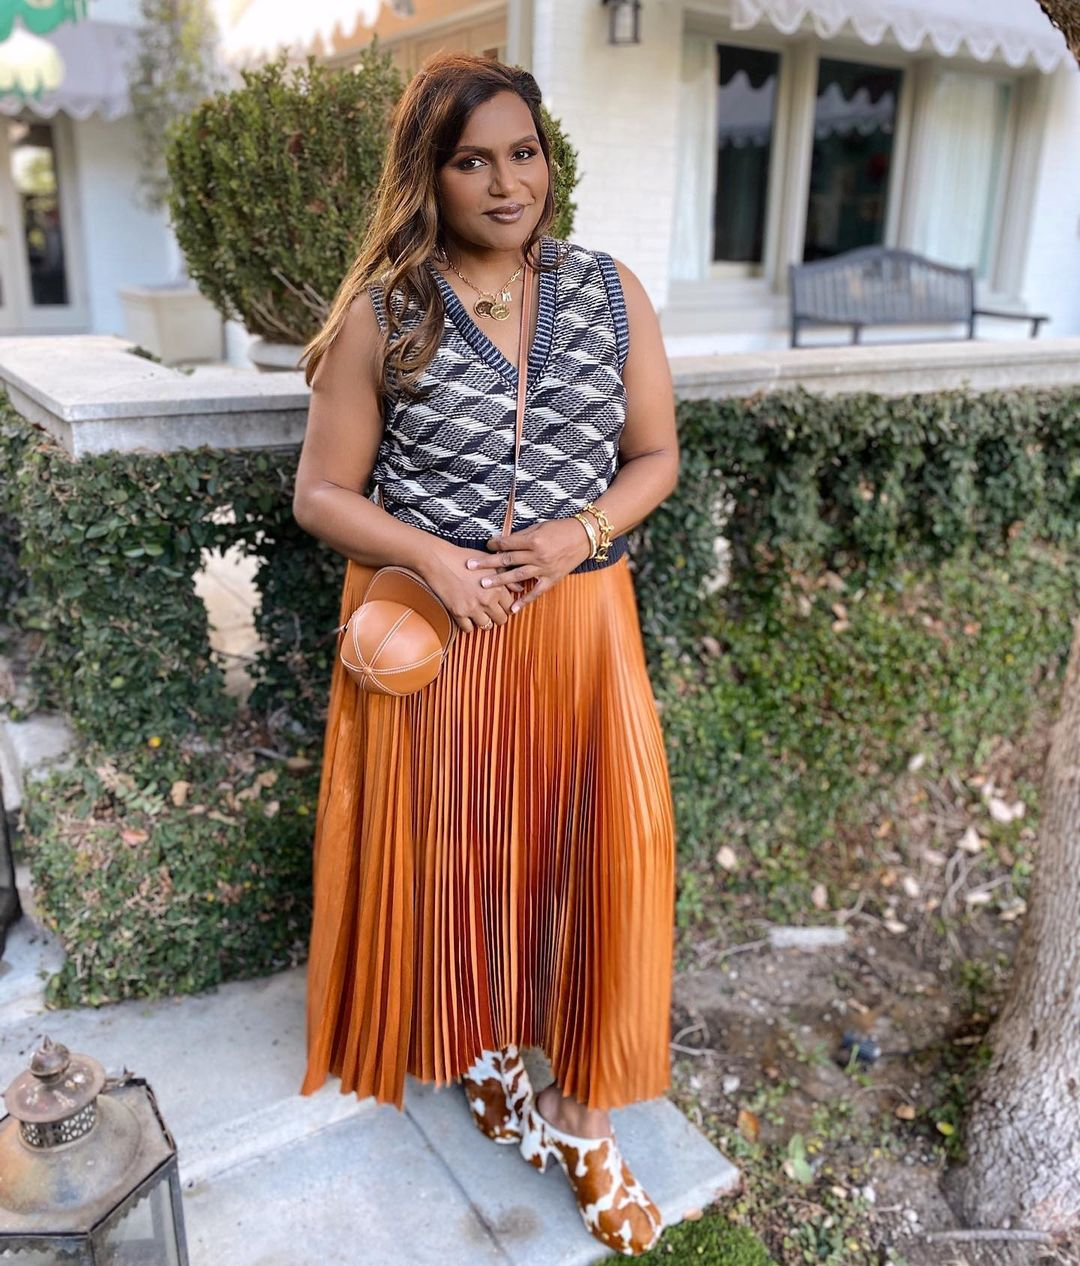 Mindy Kaling Knows The Power Of Fun Accessories